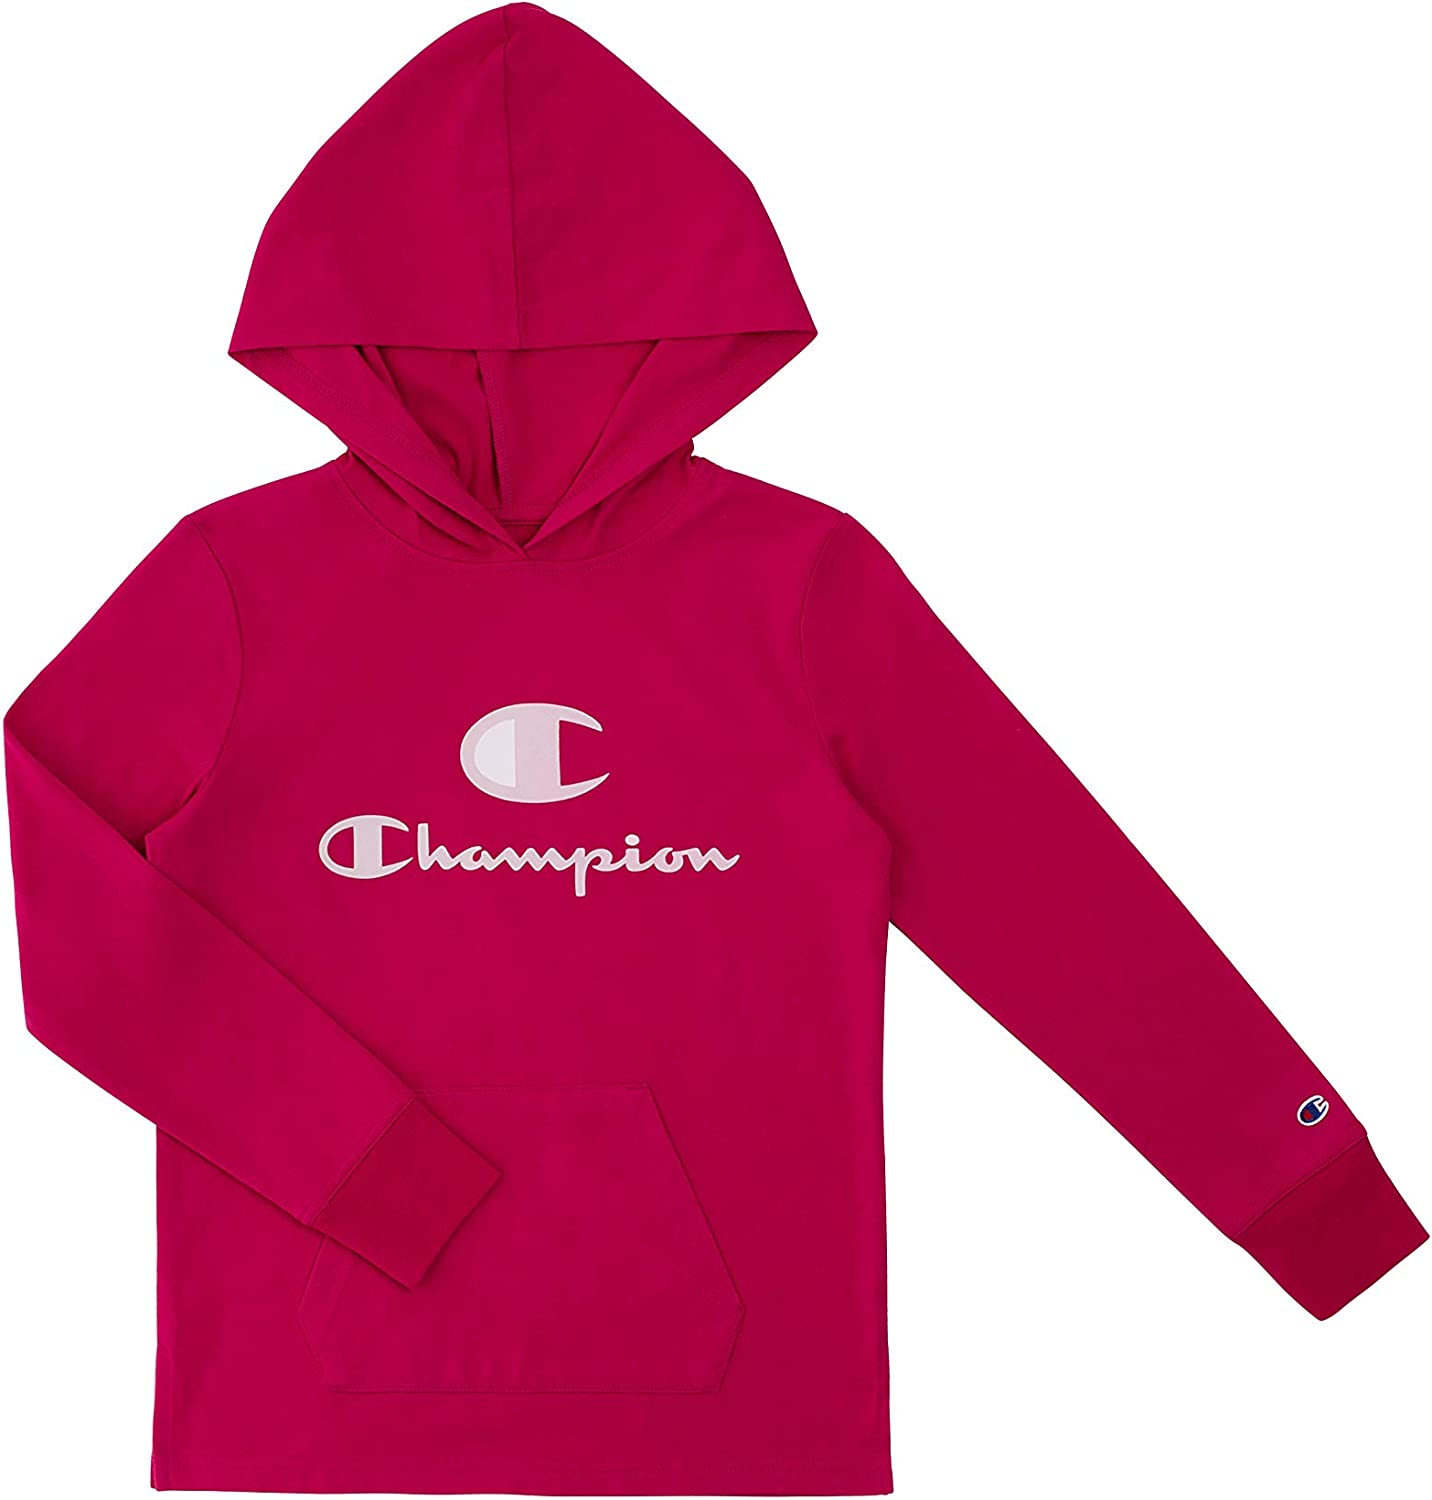 Champion Heritage Girls Long Sleeve Tee security Super special price Stretch Top Shirt Hooded